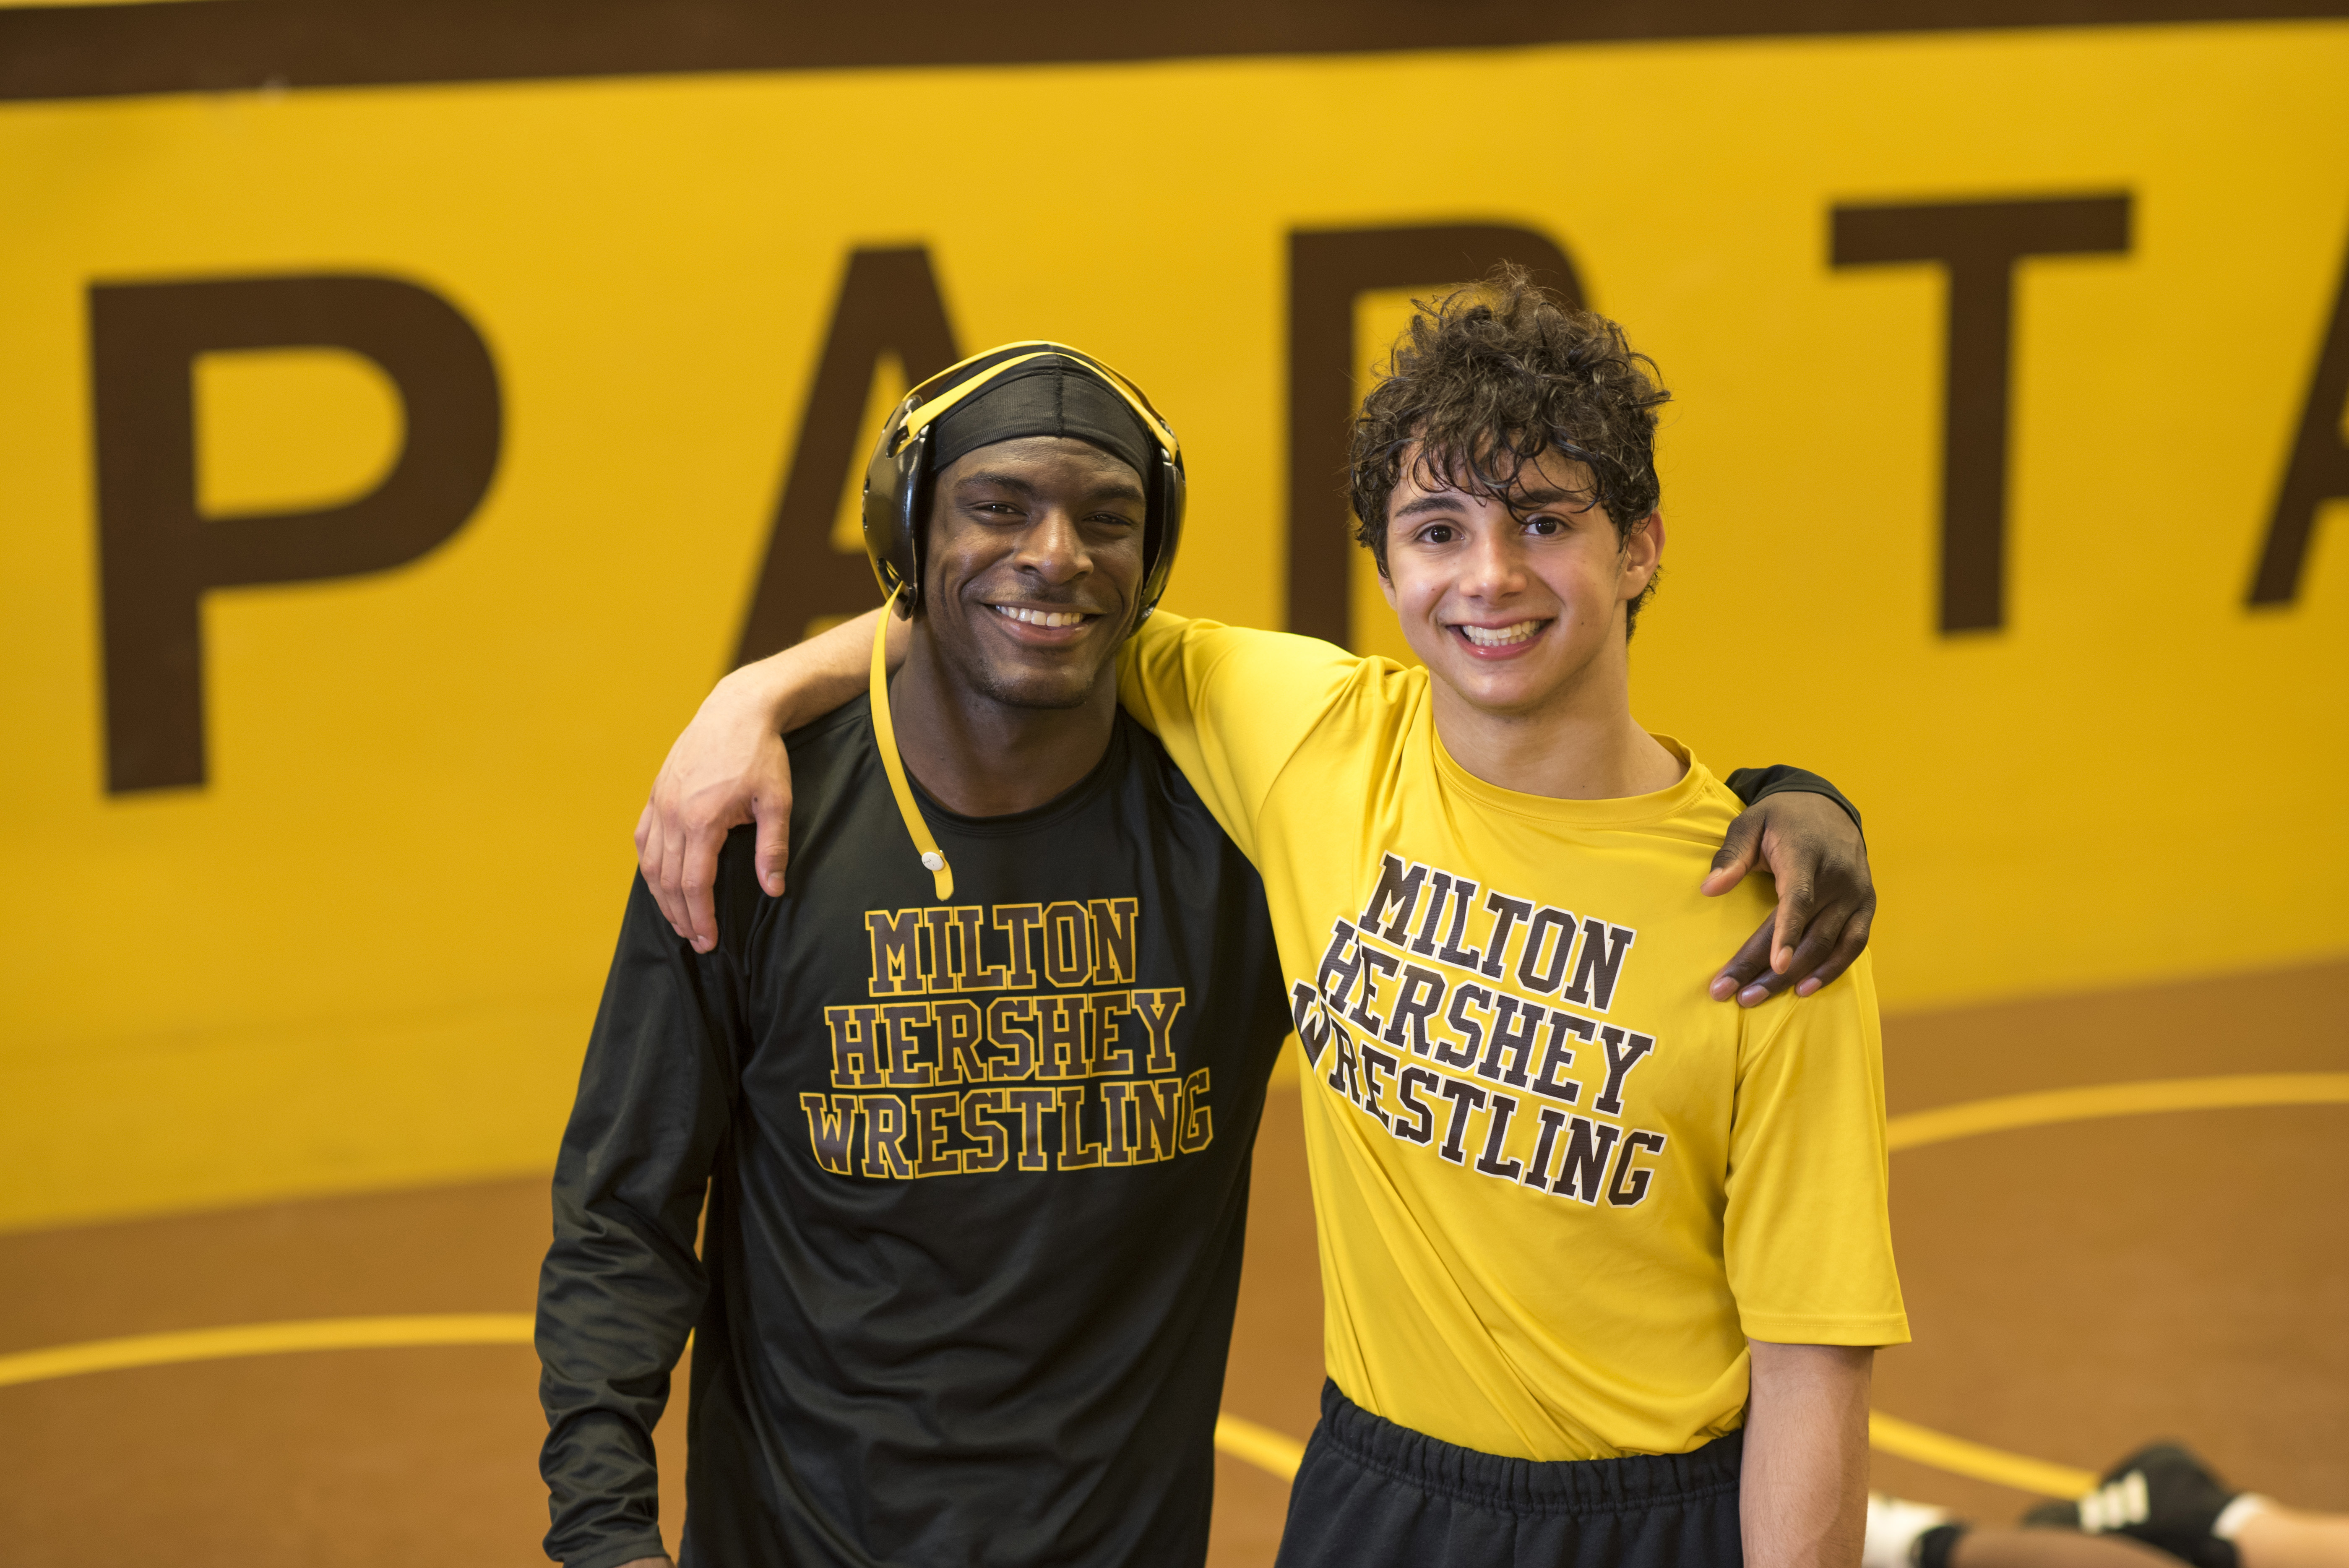 The 2016-17 MHS wrestling team ended its regular season with a dual meet record of 11 wins and three losses, and is preparing for District Championships.